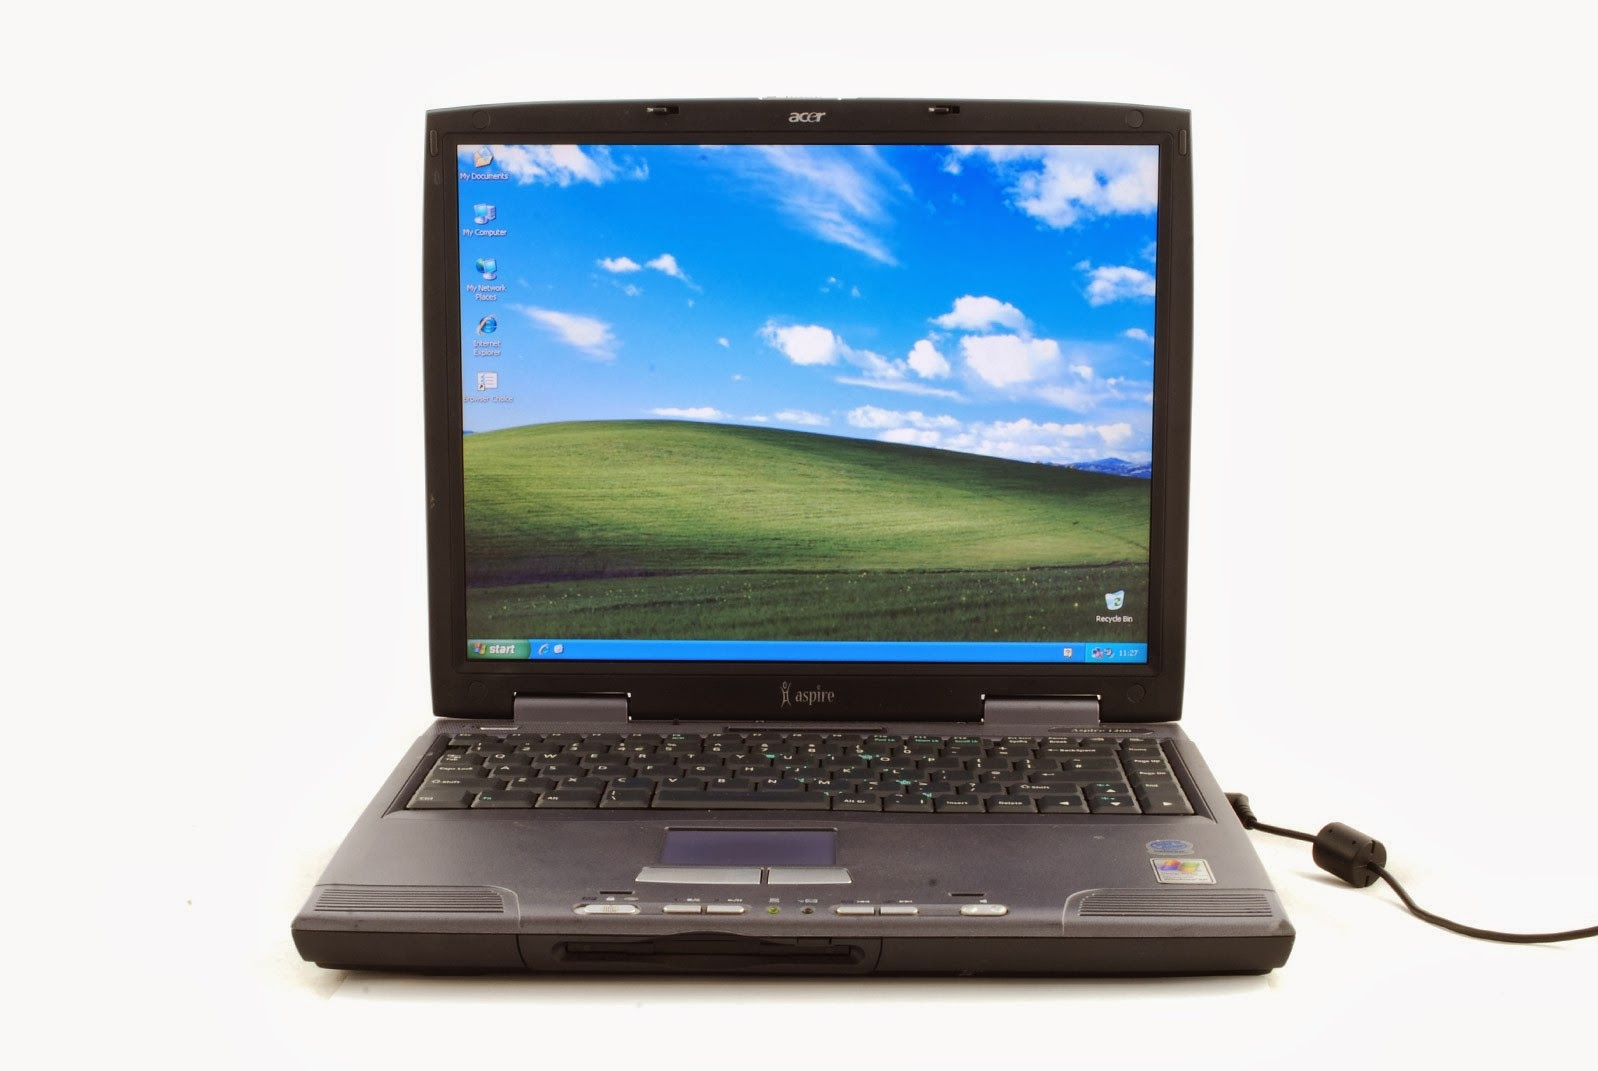 ACER ASPIRE 1200 VGA DRIVERS PC